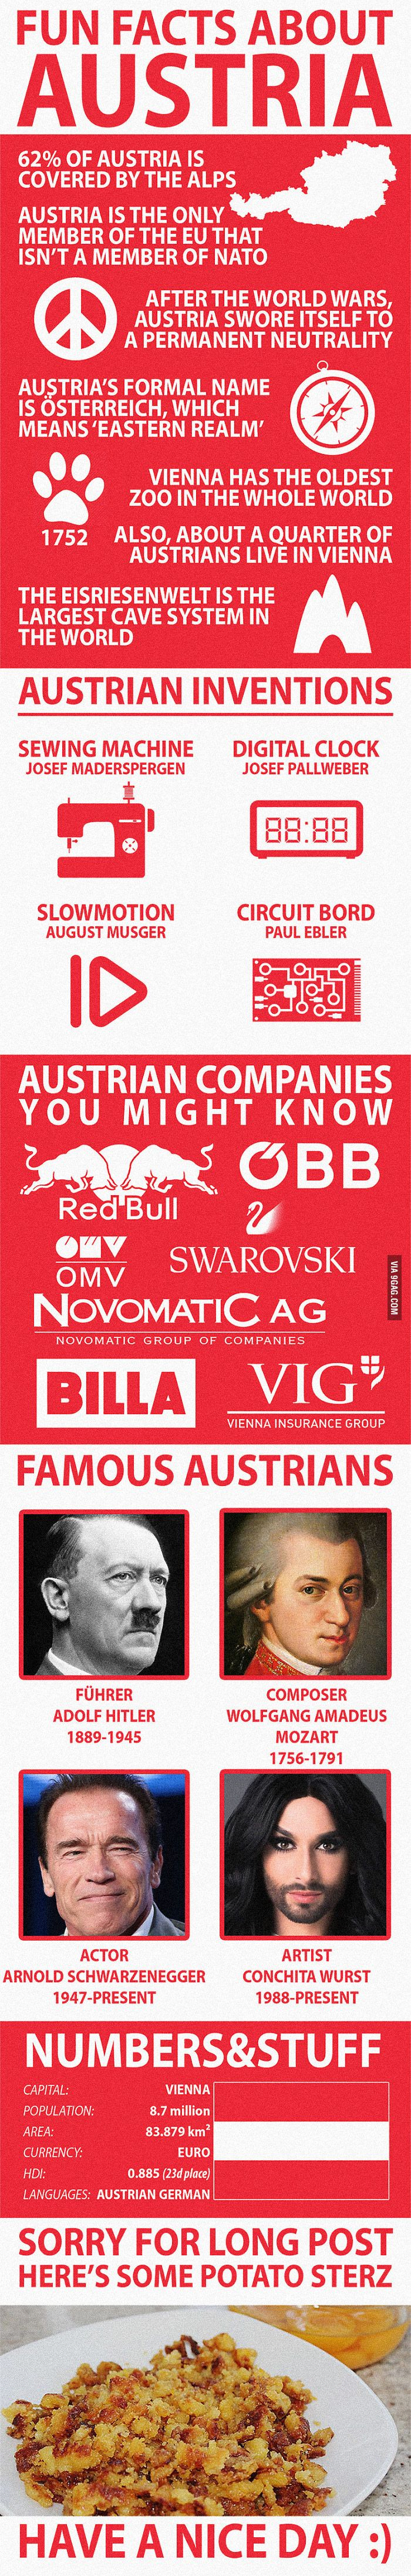 Fun Facts about Austria